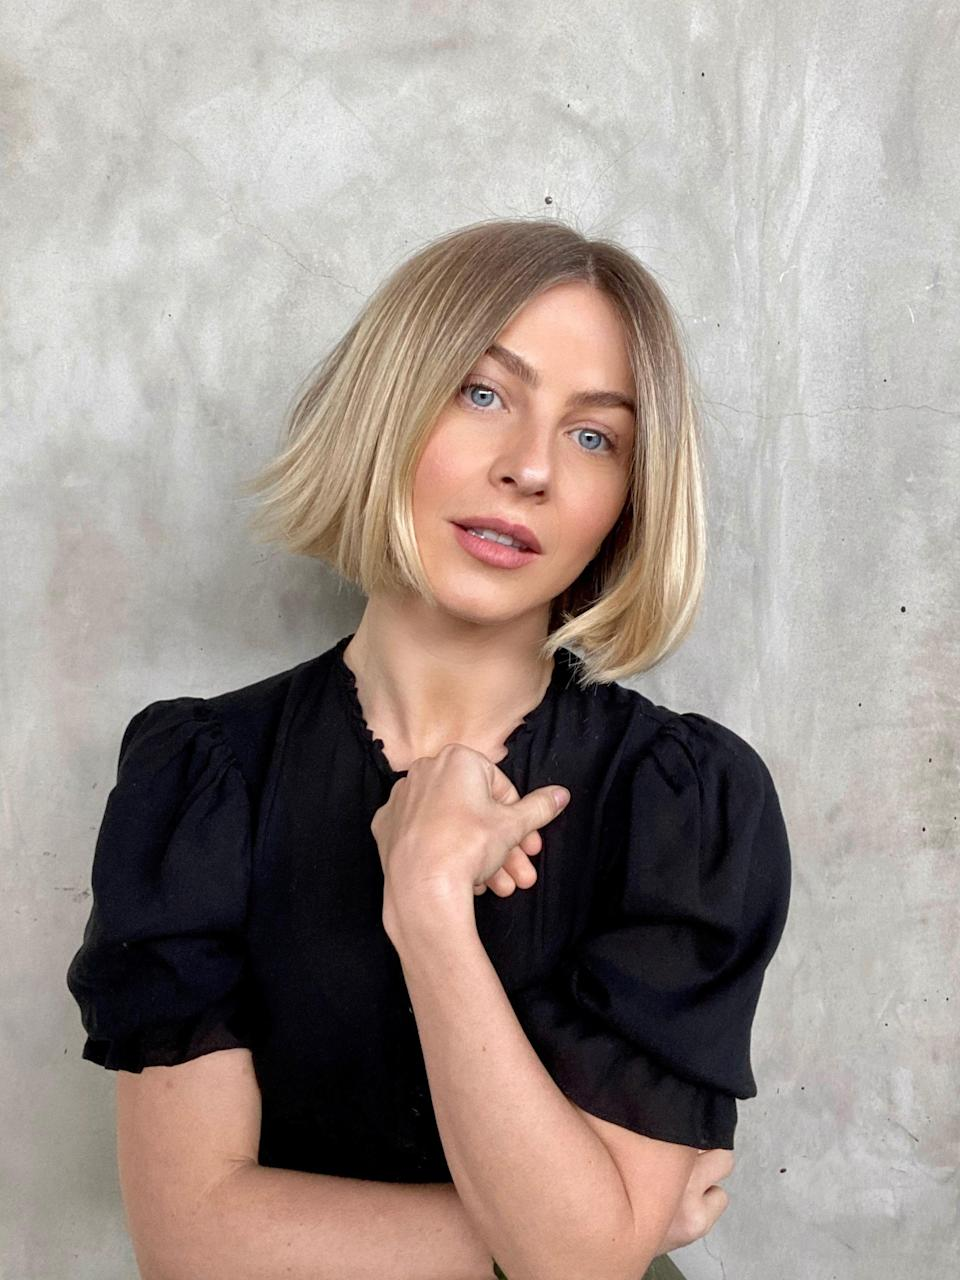 """""""I think 2021 will be all about structure. Out with the messy texture; in comes the polished structure,"""" says Riawna Capri, co-owner of <a href=""""https://www.ninezeroonesalon.com/"""" rel=""""nofollow noopener"""" target=""""_blank"""" data-ylk=""""slk:Nine Zero One"""" class=""""link rapid-noclick-resp"""">Nine Zero One</a> in L.A. She says that fuzzy, bedhead hair is being traded in for more sleek styles of all lengths, and you can expect to see """"more blunt, thick lines in haircuts instead of shattered, piecey texture."""""""